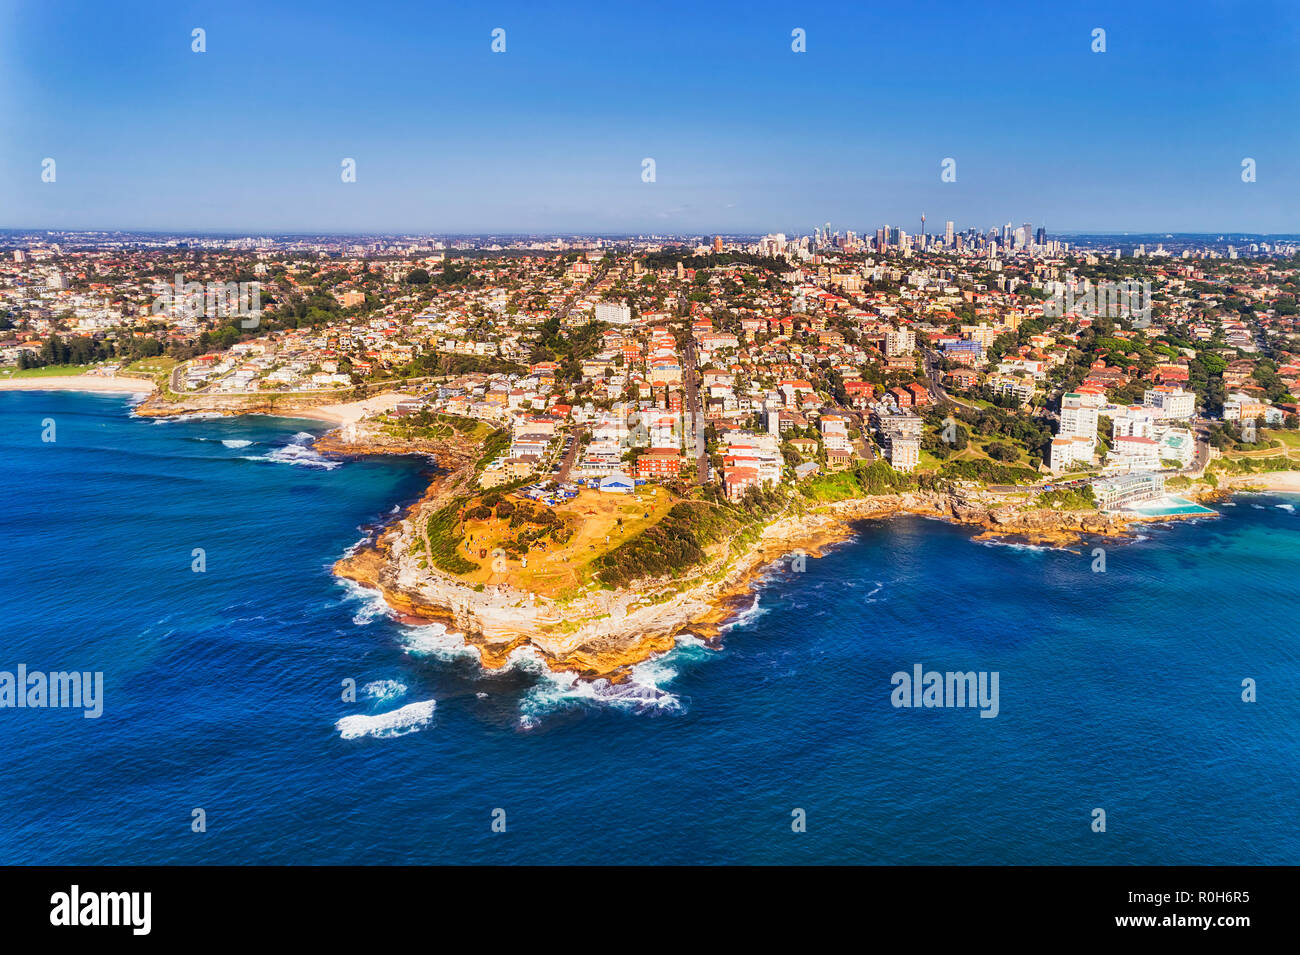 Mackenzies point and Marks park traditional venue for annual sculpture by the sea tourist attraction in Sydney Eastern Suburbs near Bondi beach. - Stock Image